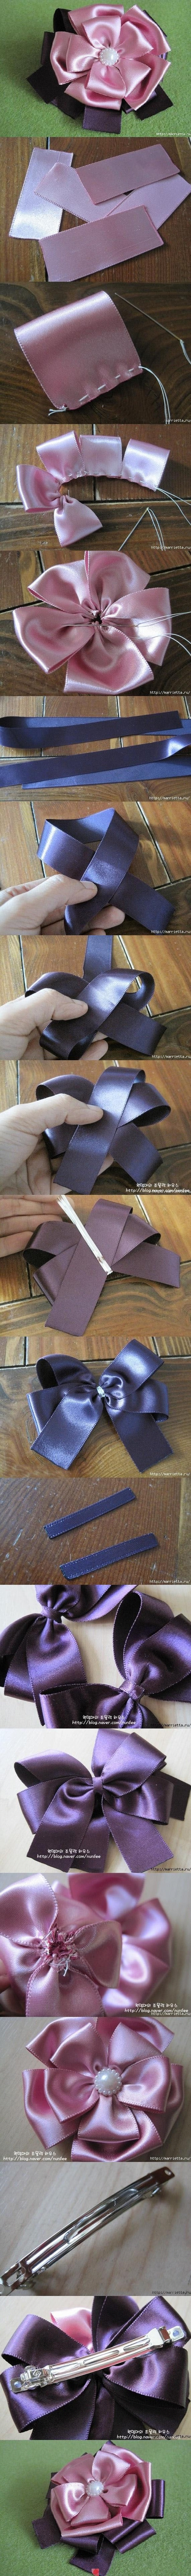 Different Ways to Use Ribbons 14